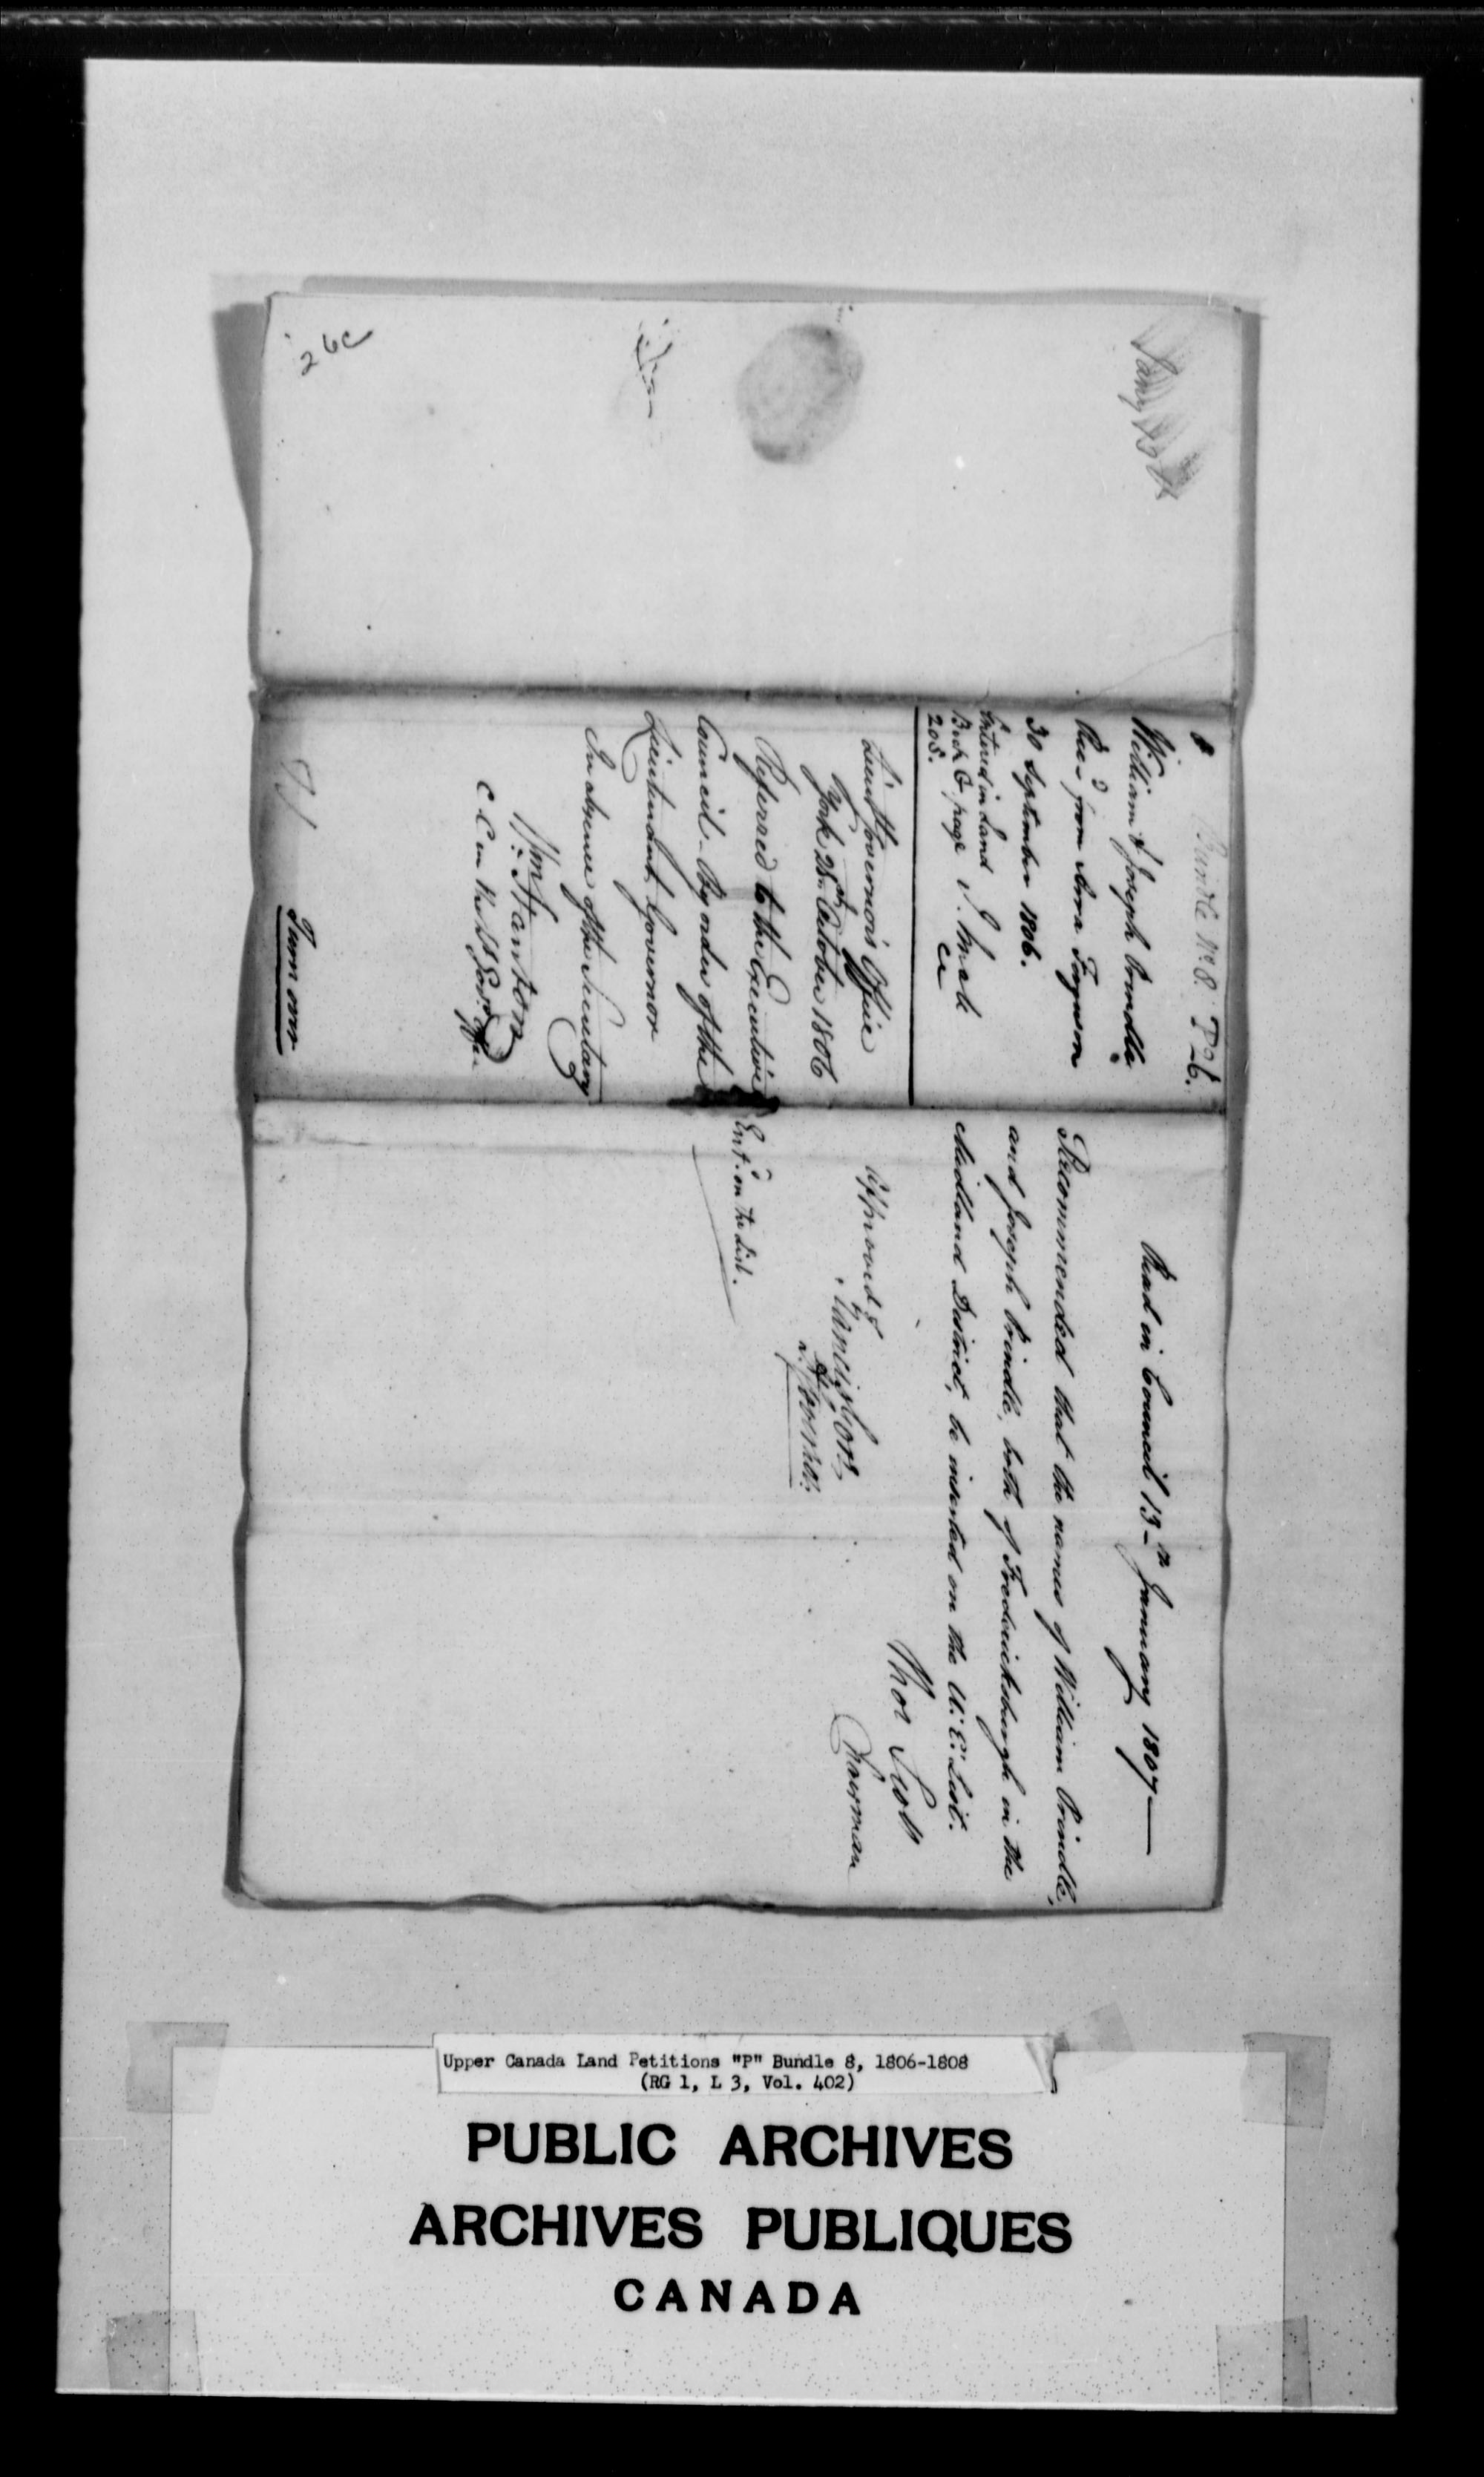 Title: Upper Canada Land Petitions (1763-1865) - Mikan Number: 205131 - Microform: c-2490